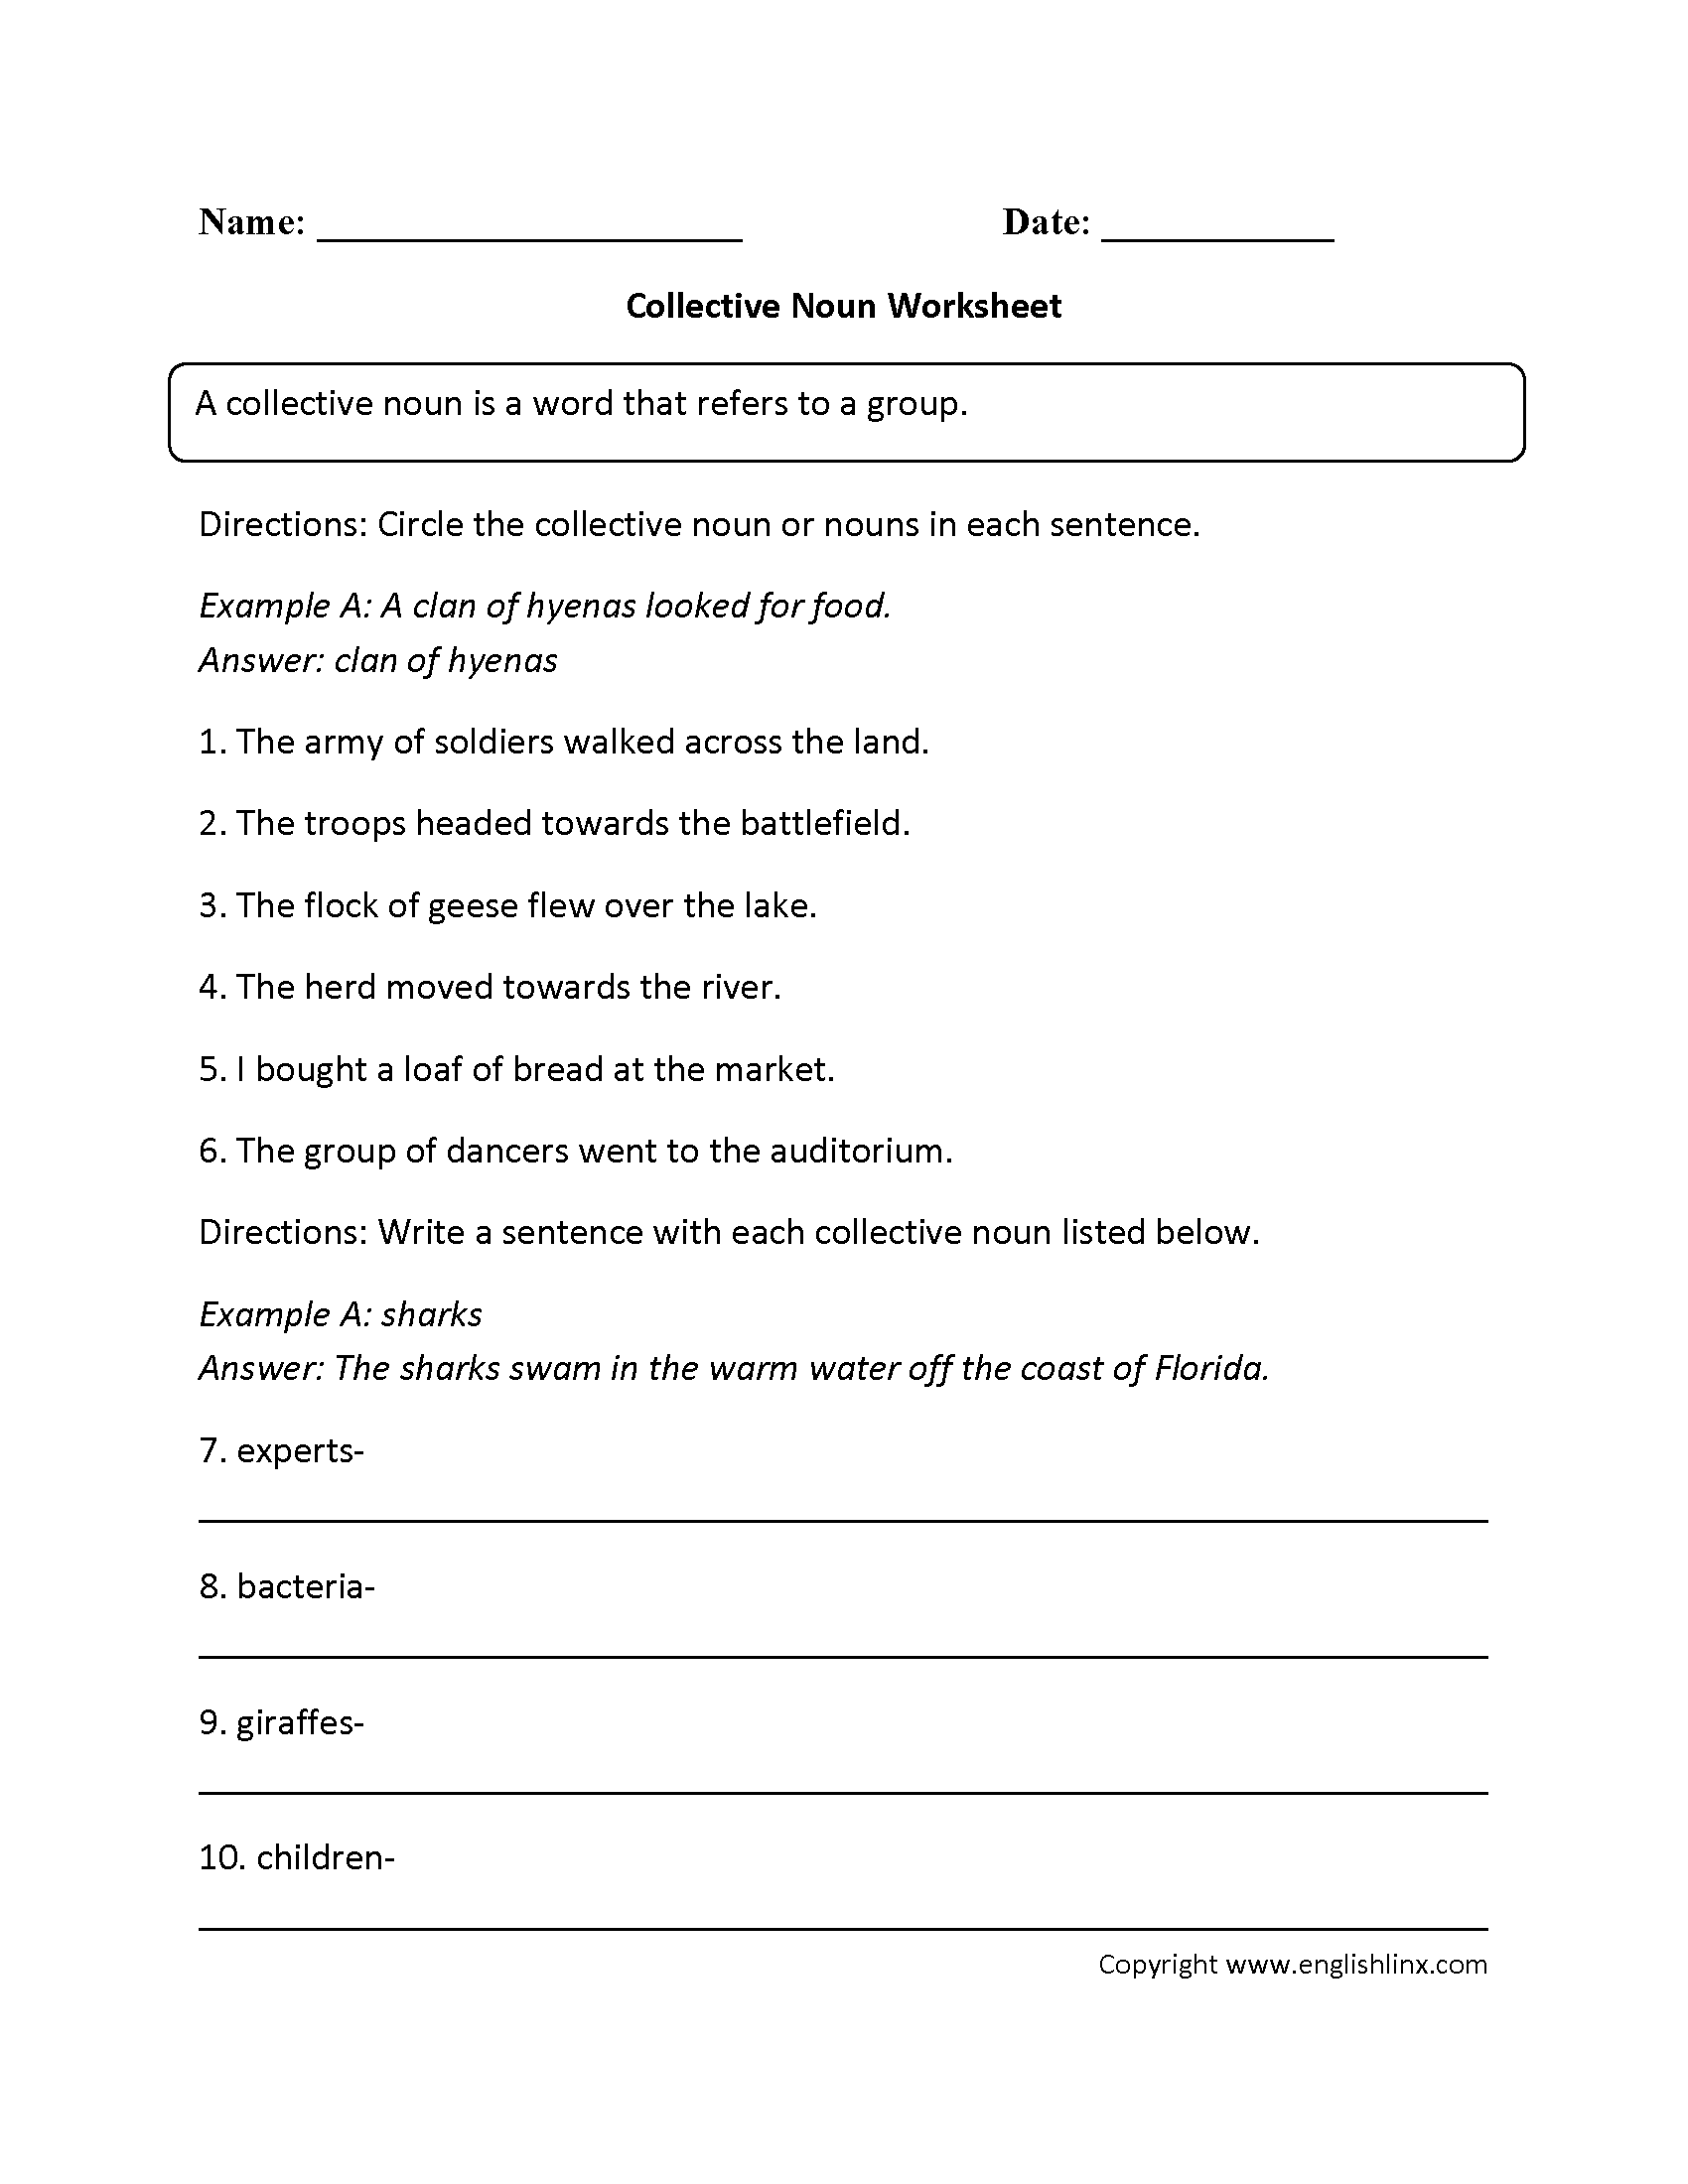 Nouns Worksheets | Collective Nouns Worksheets